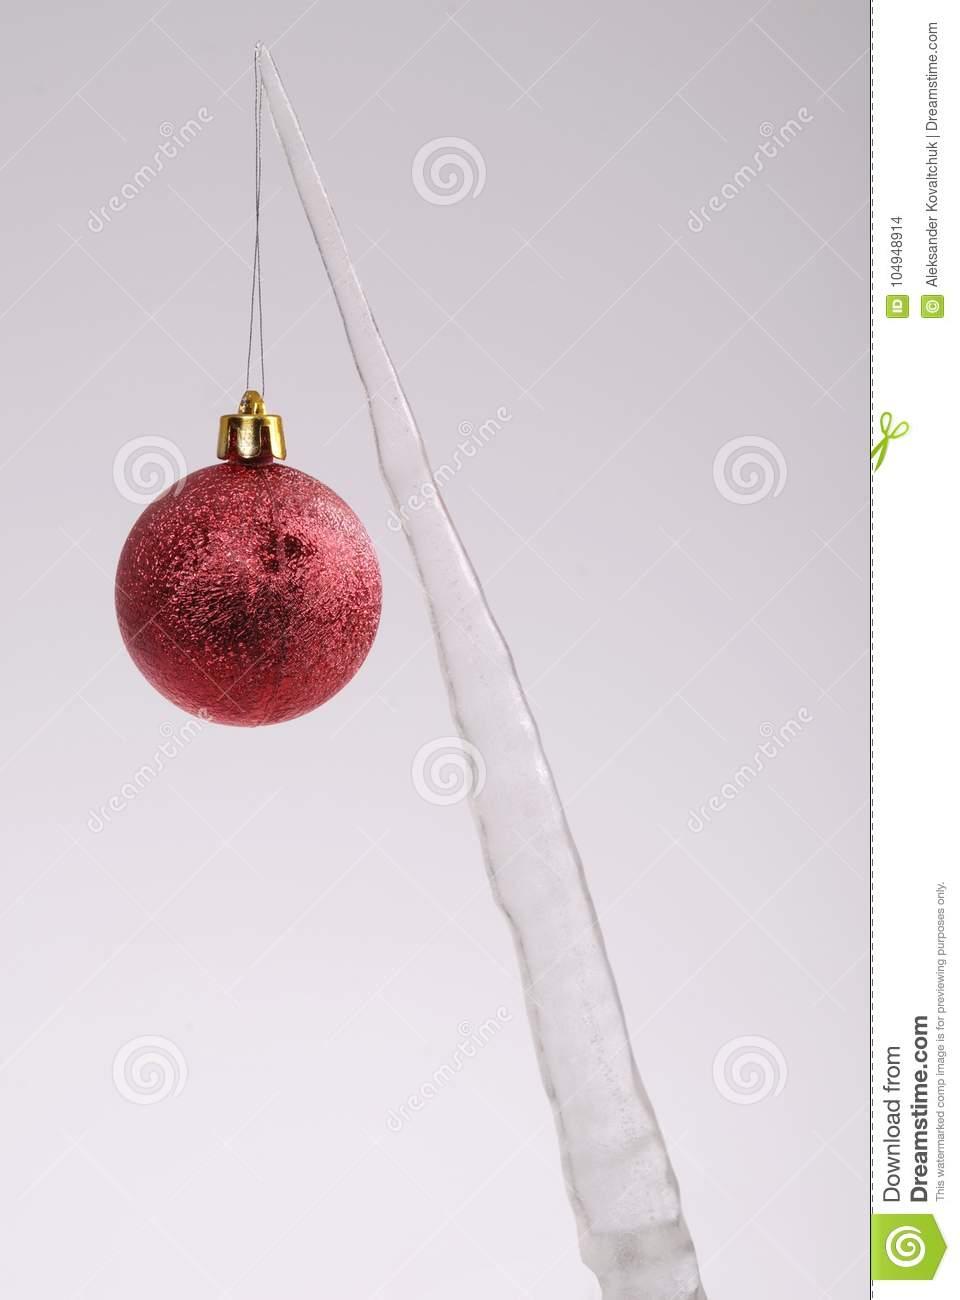 Icicle With A Christmas Tree Toy Stock Photo - Image of bright ...